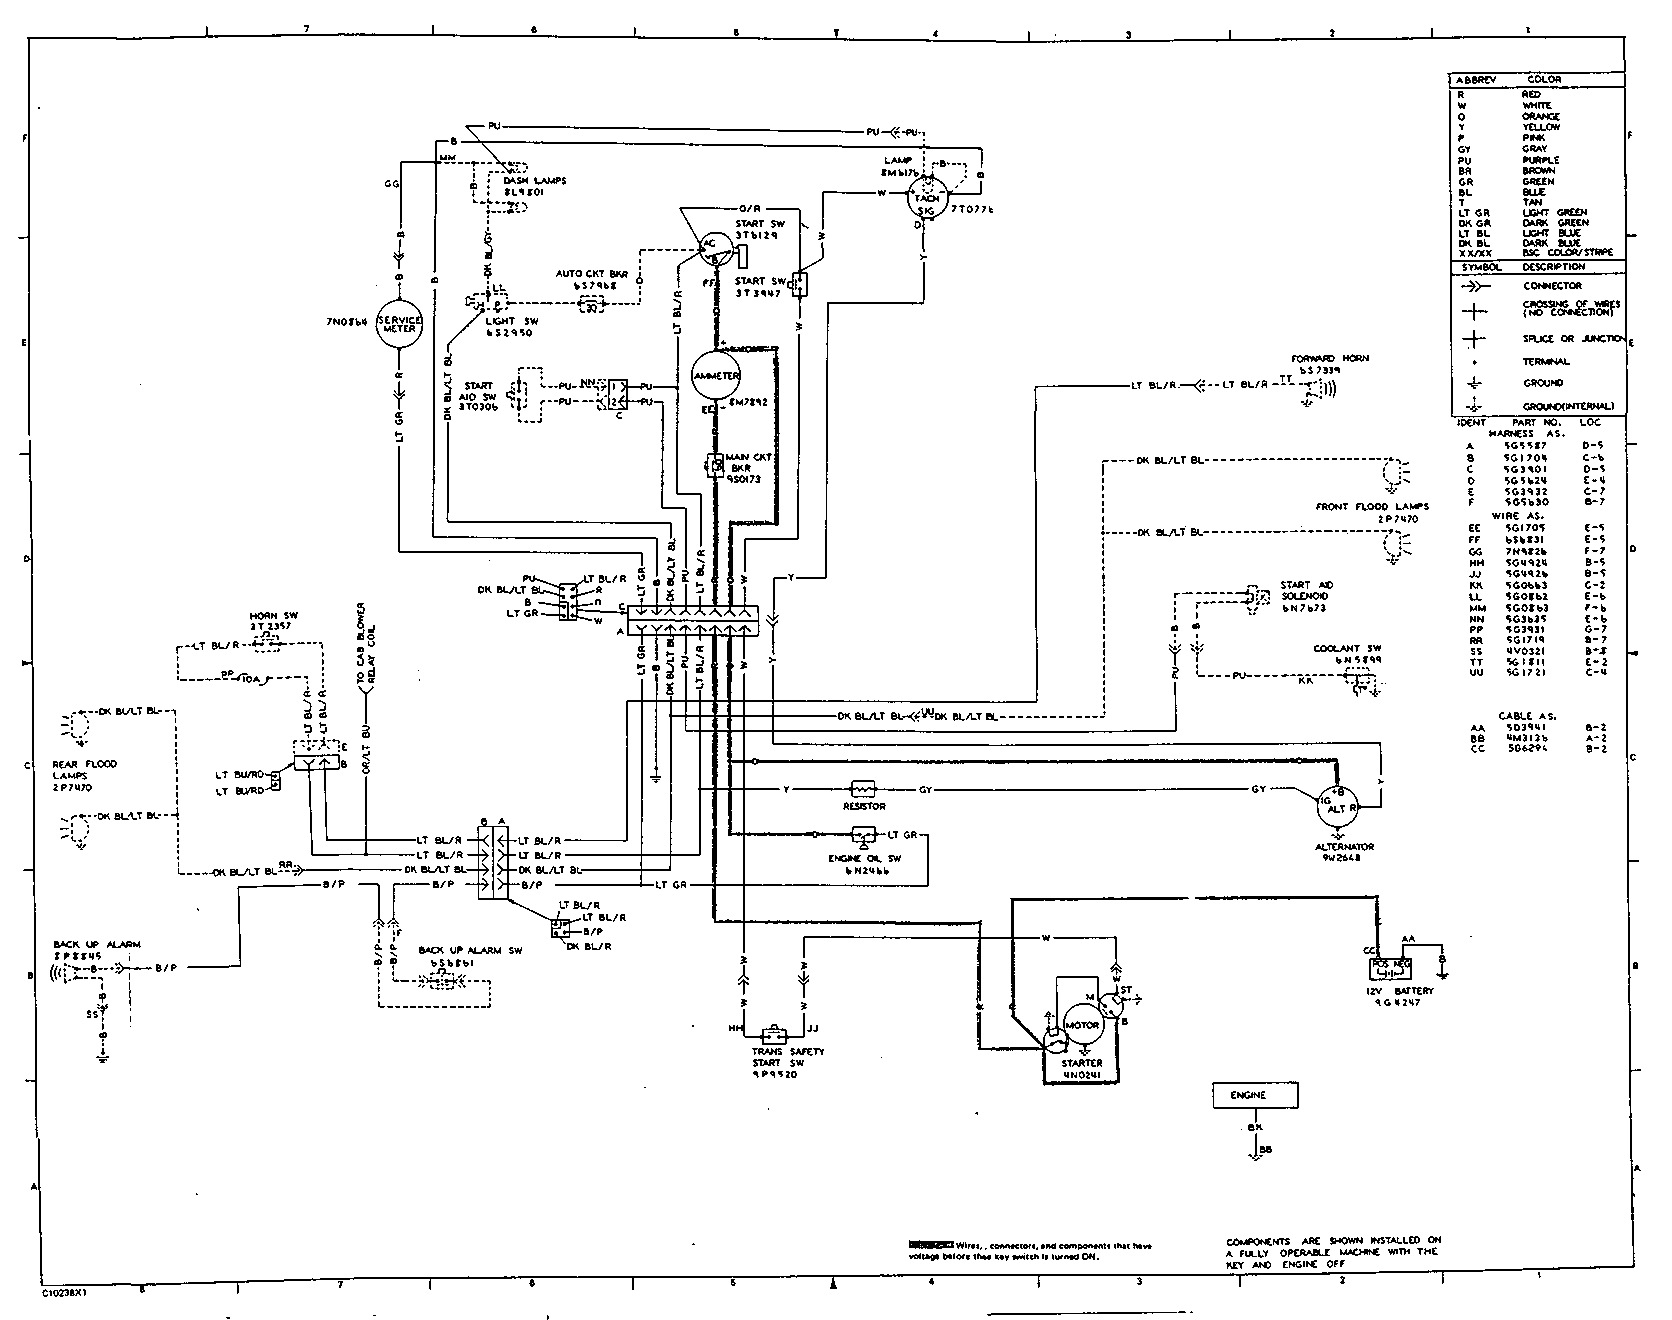 Honeywell R845a Wiring Diagram